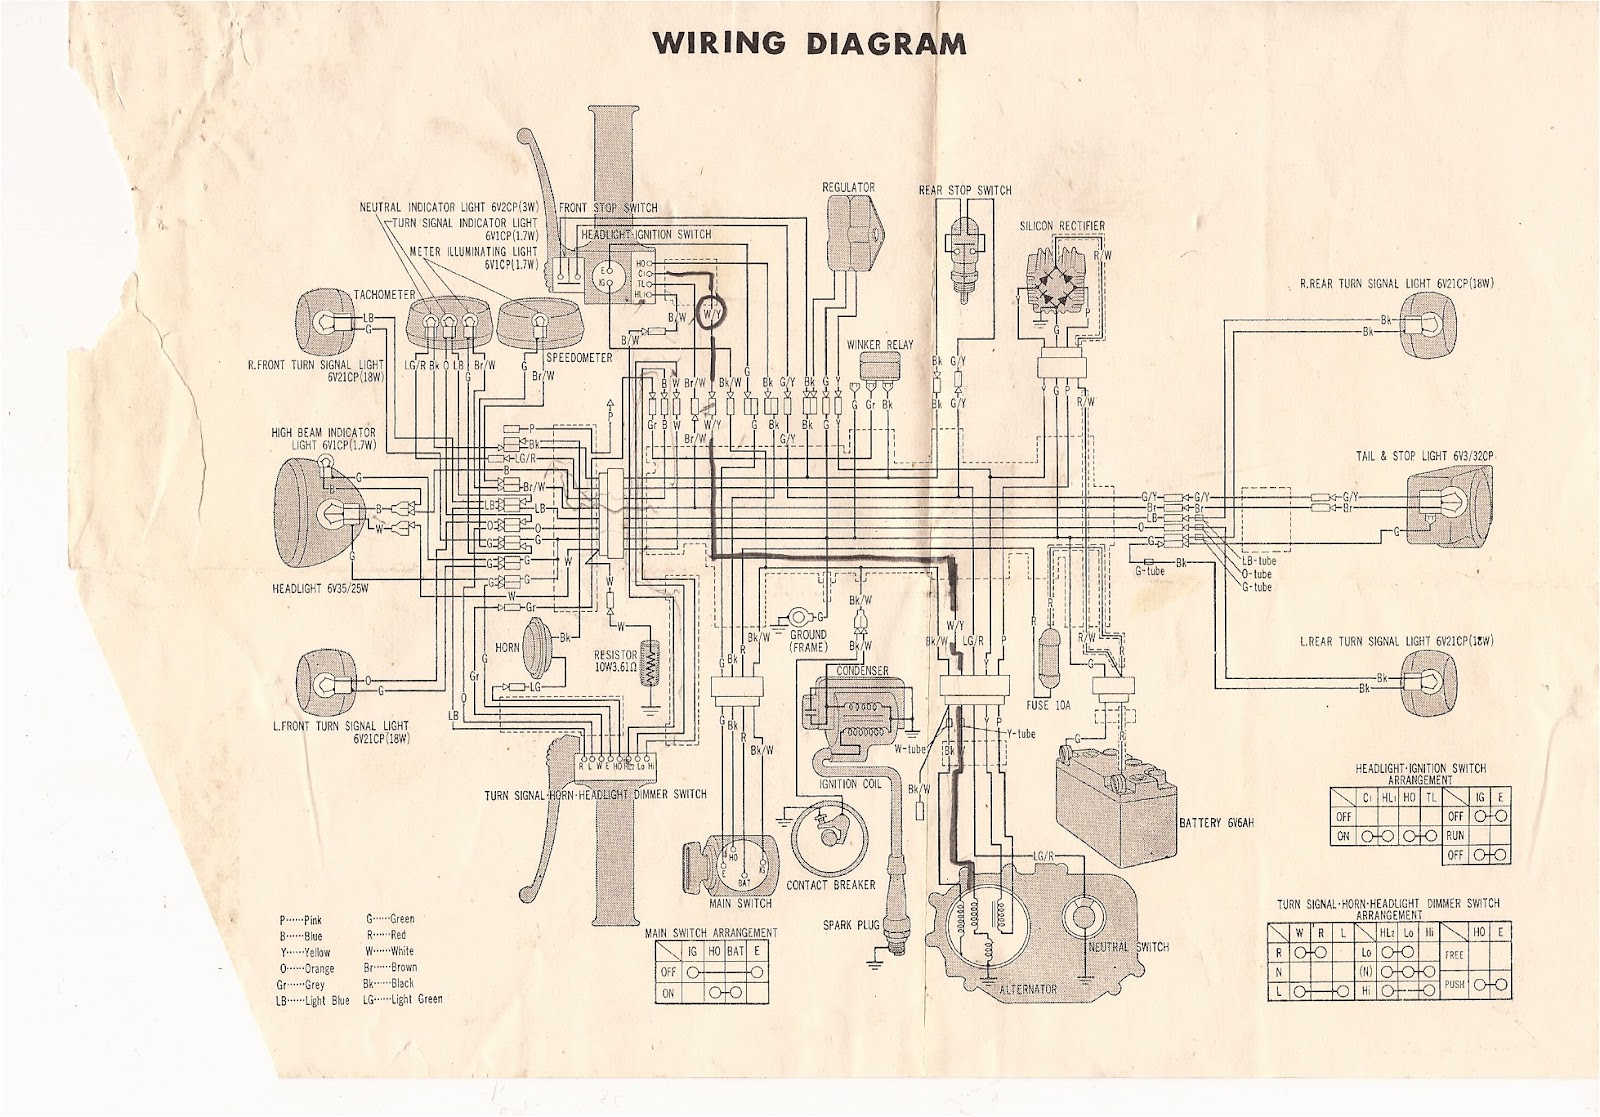 hight resolution of r4l xl350 wiring diagram and xl250 rh ramen4life blogspot com 1979 honda xl250 wiring diagram honda xr 250 wiring diagram